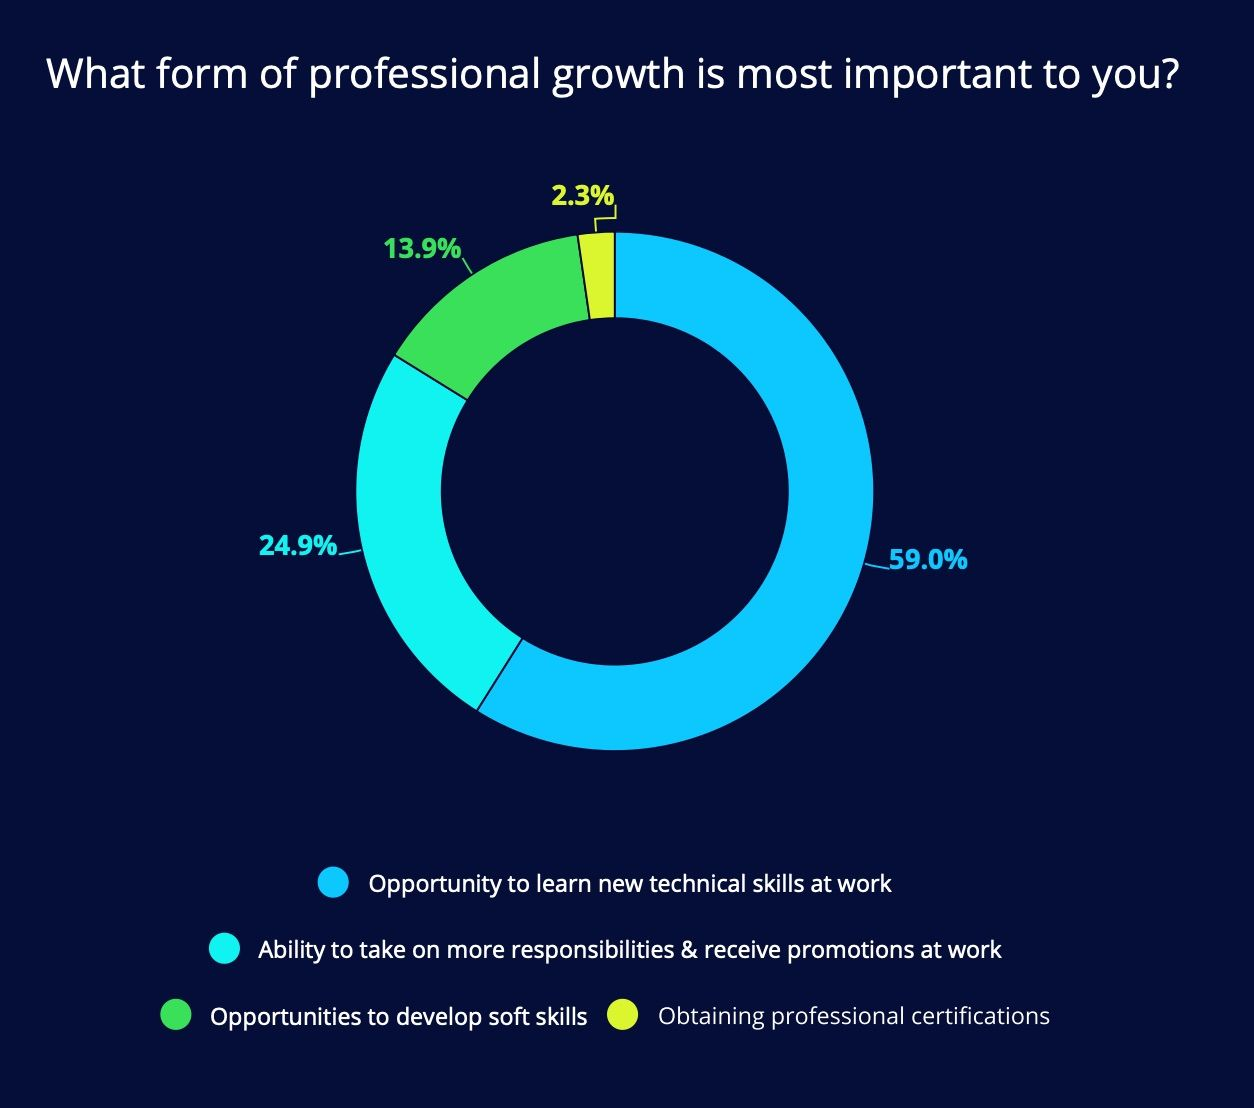 What do professional developers actually care about in terms of professional development?